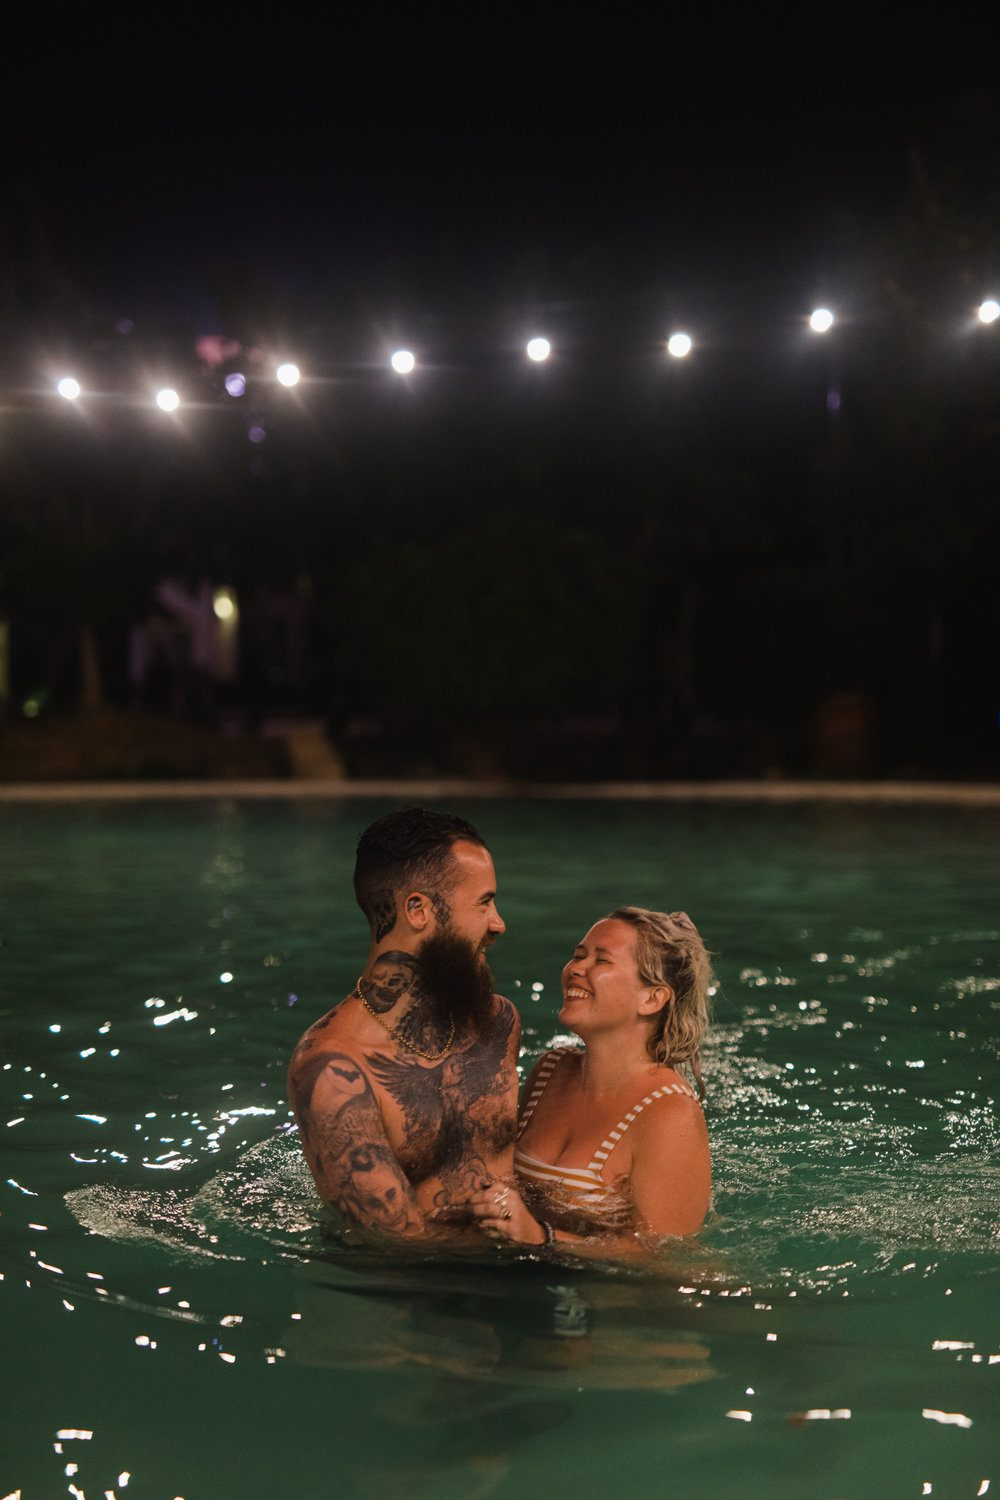 Couple take midnight dip in hotel pool with string lights